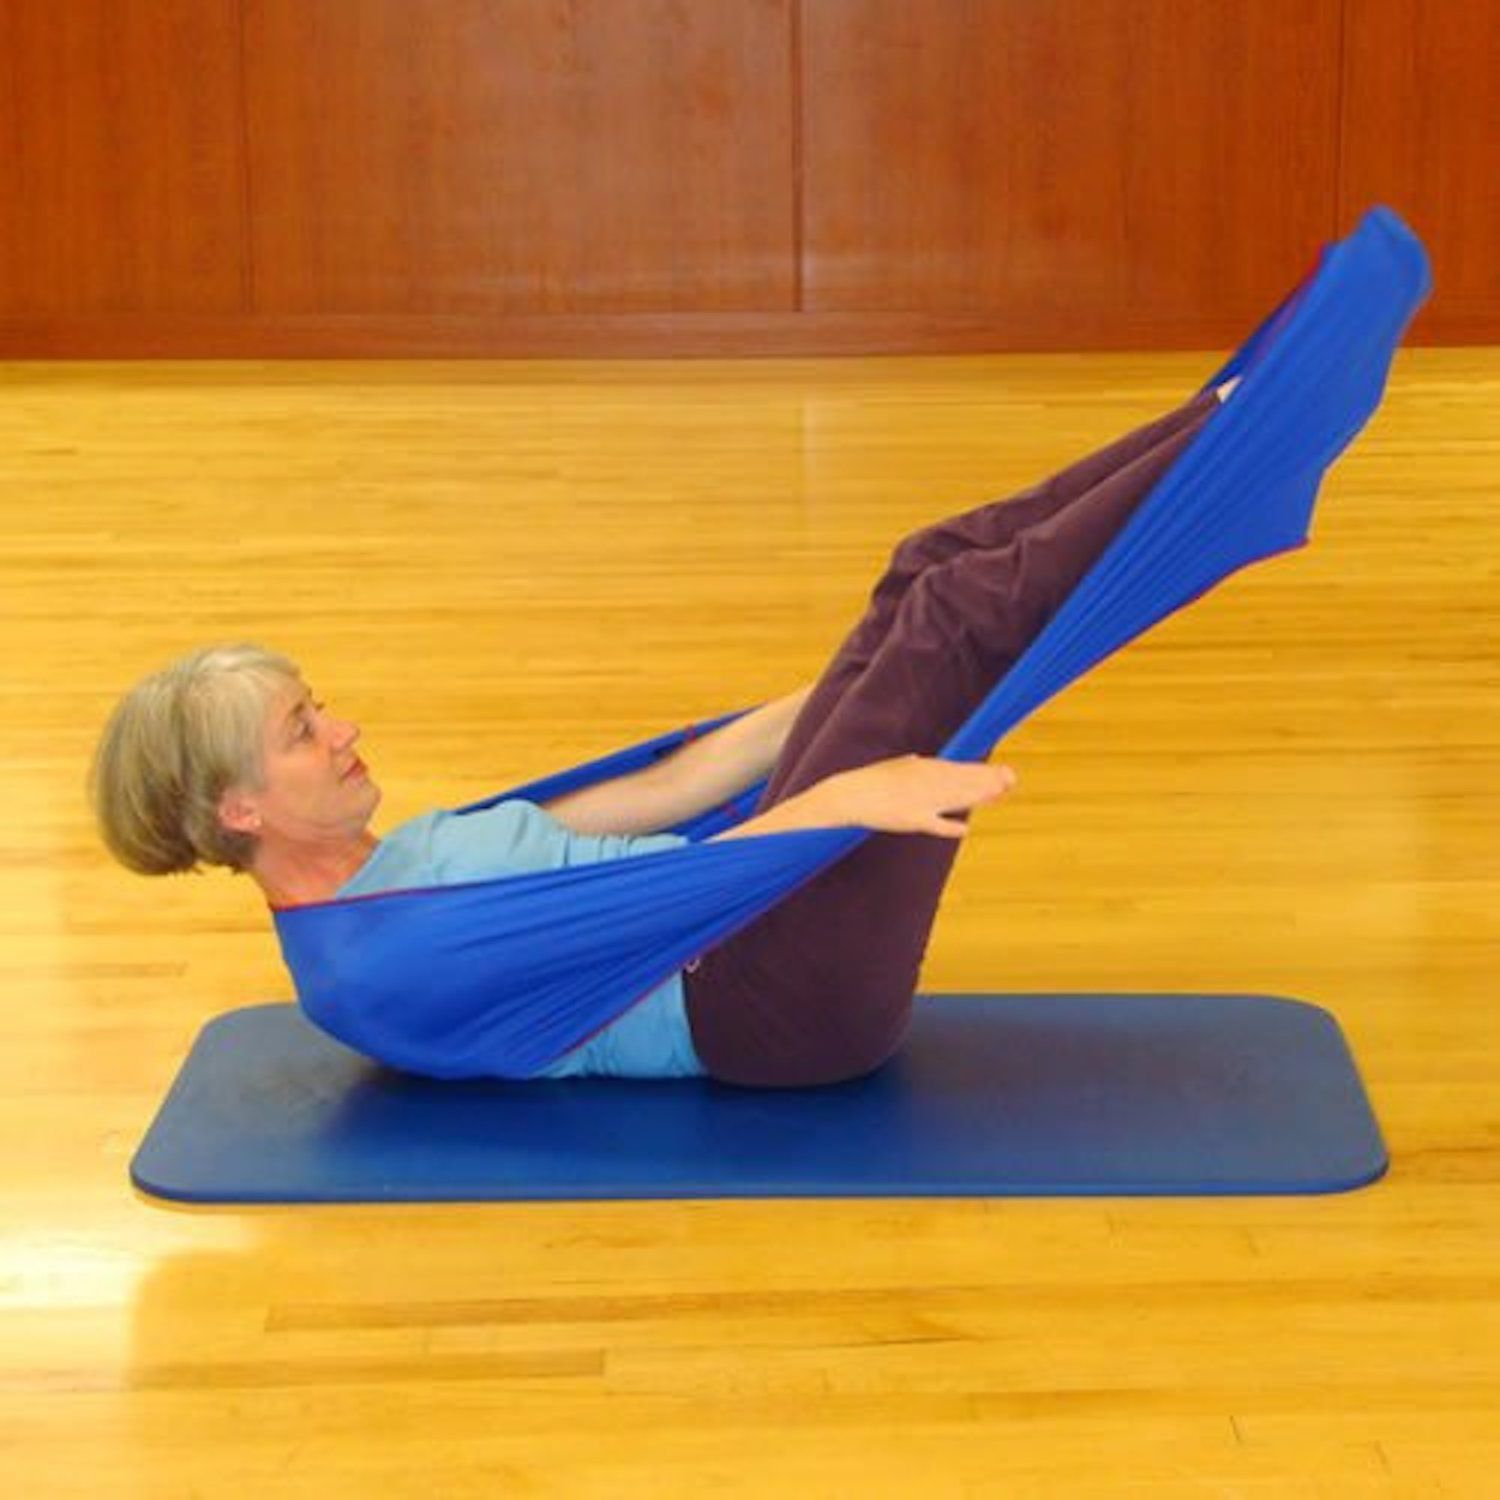 Alternative Equipment To Spice Up Your Pilates Workout